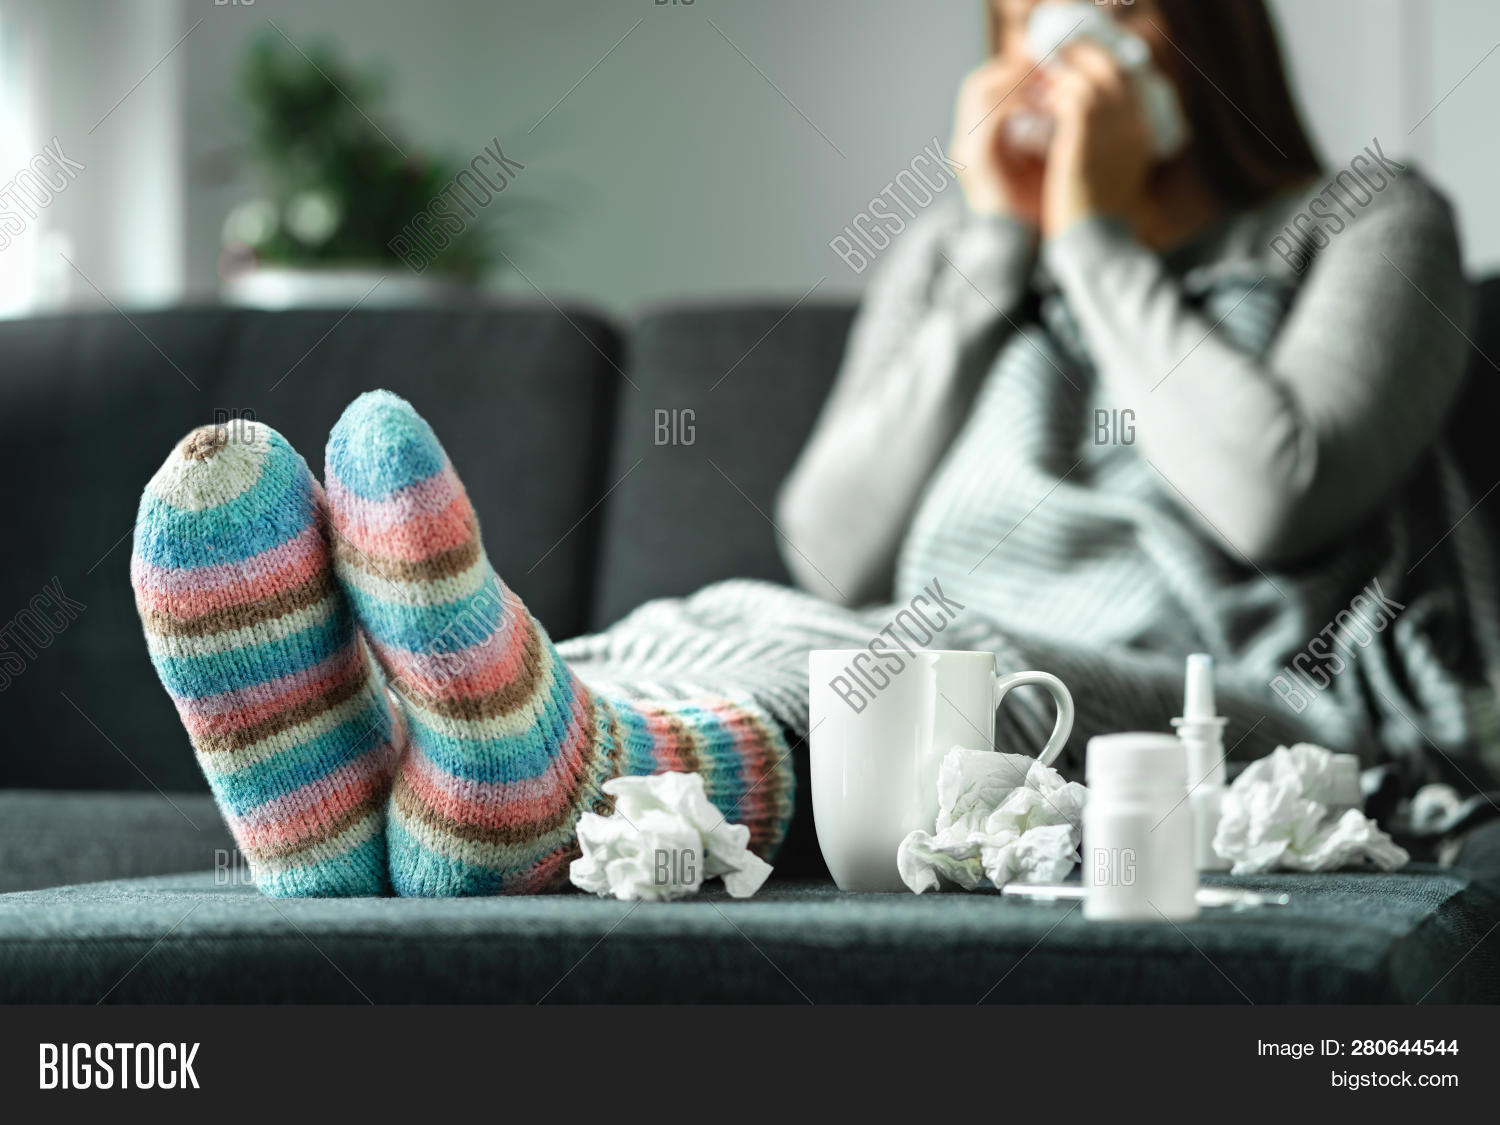 adult,beverage,blanket,blow,blowing,cold,couch,cough,drugs,female,fever,flu,grippe,handkerchief,health,home,hot,ill,illness,infection,leave,medical,medicine,nasal,nose,paper,people,person,remedies,rest,resting,rhinitis,sick,sitting,sneeze,sniff,sock,sofa,spray,stocking,table,temperature,thermometer,tissue,towel,virus,winter,woman,woolen,young